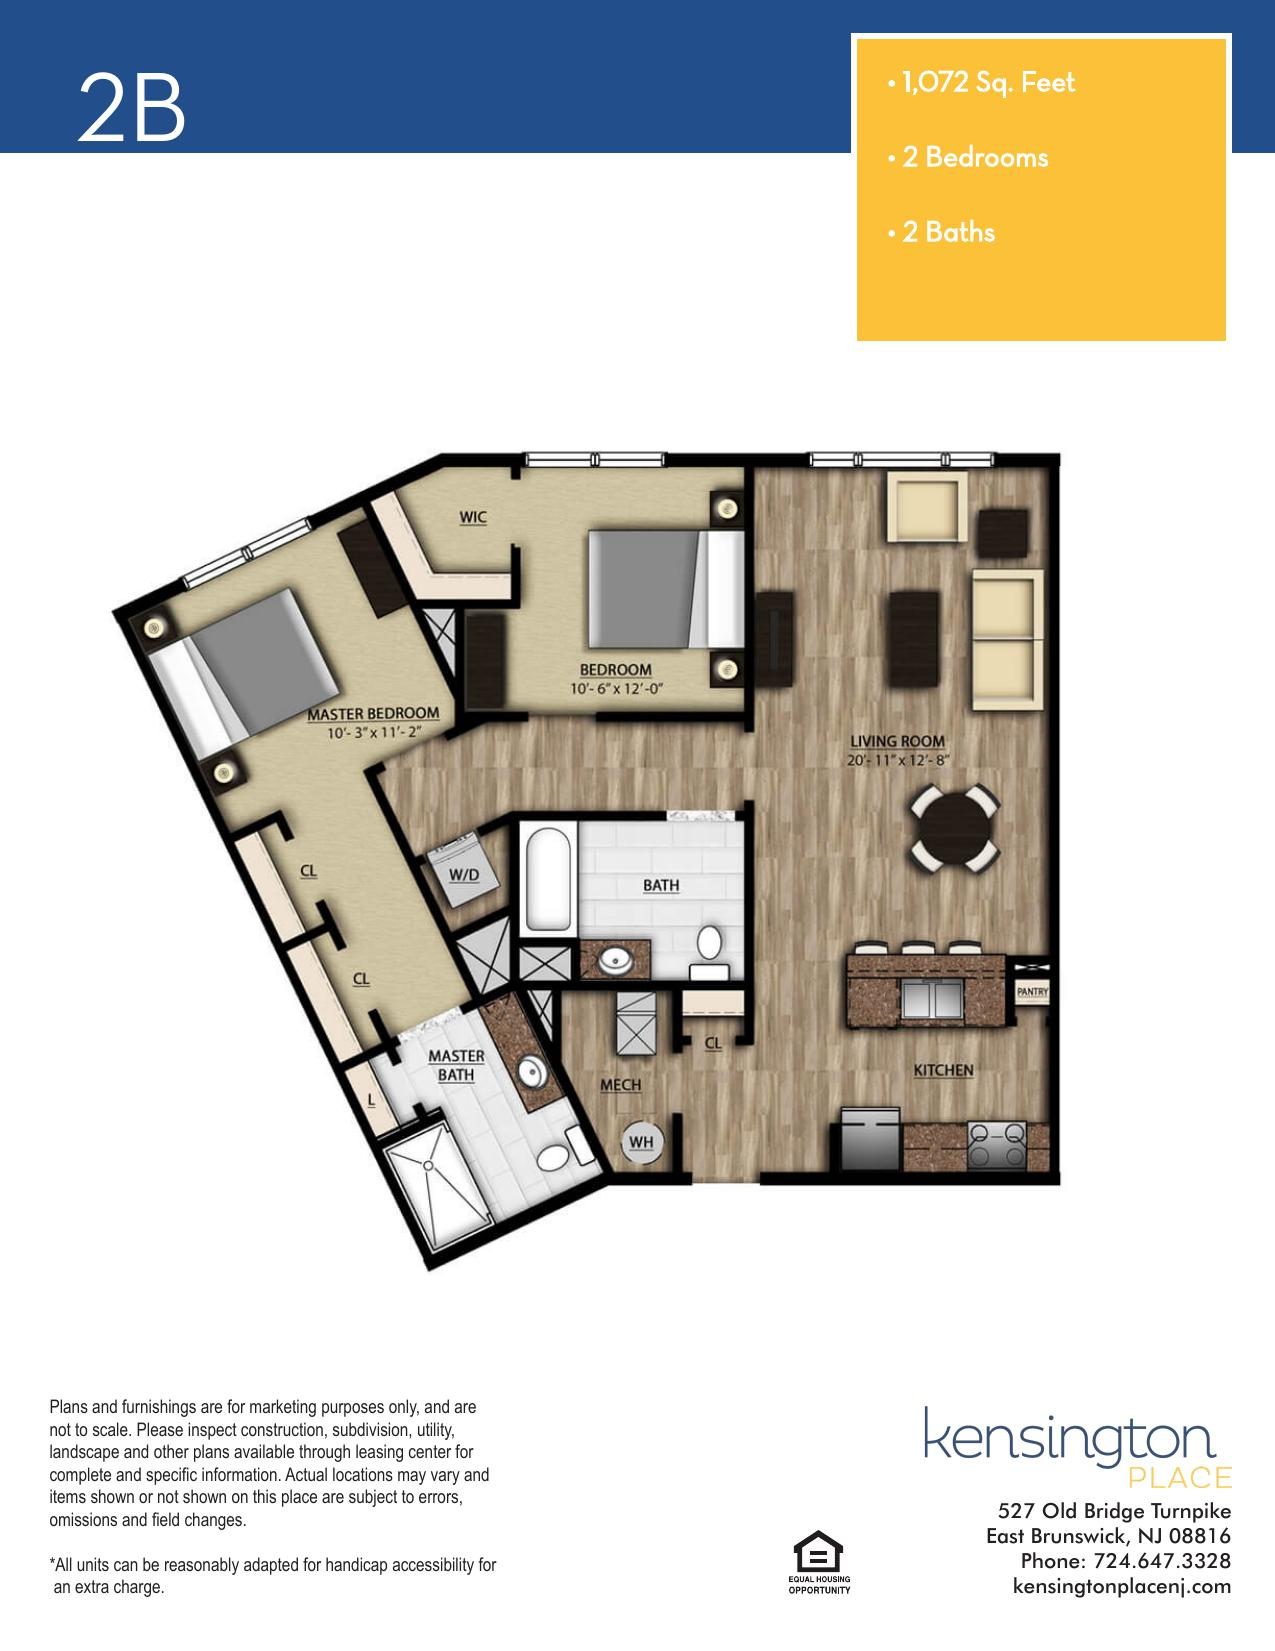 Kensington Place Apartment Floor Plan 2B